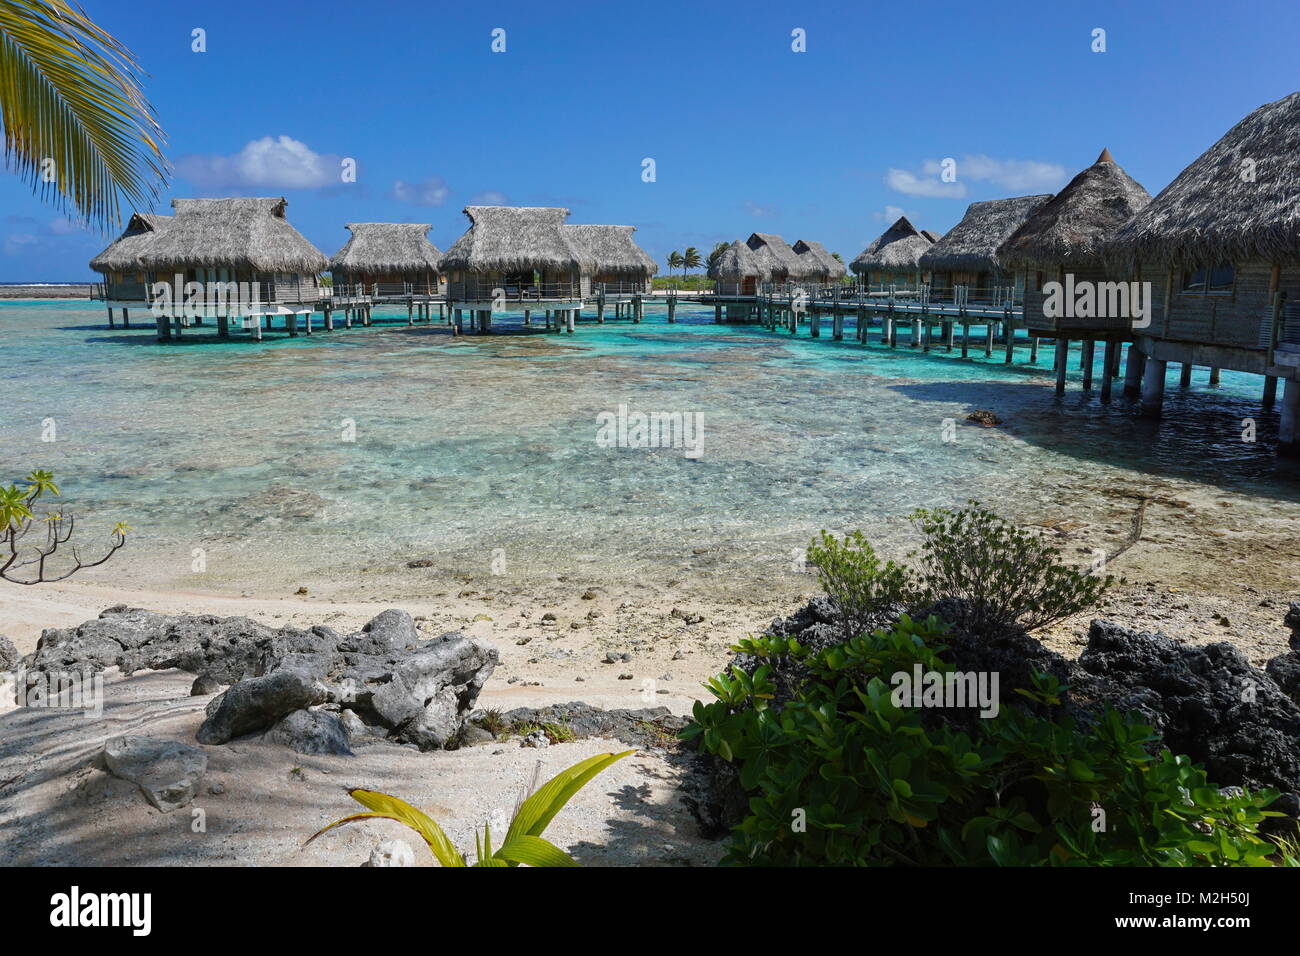 Tropical island resort with bungalows on stilt in the lagoon, Tikehau atoll, Tuamotus, French Polynesia, Pacific - Stock Image